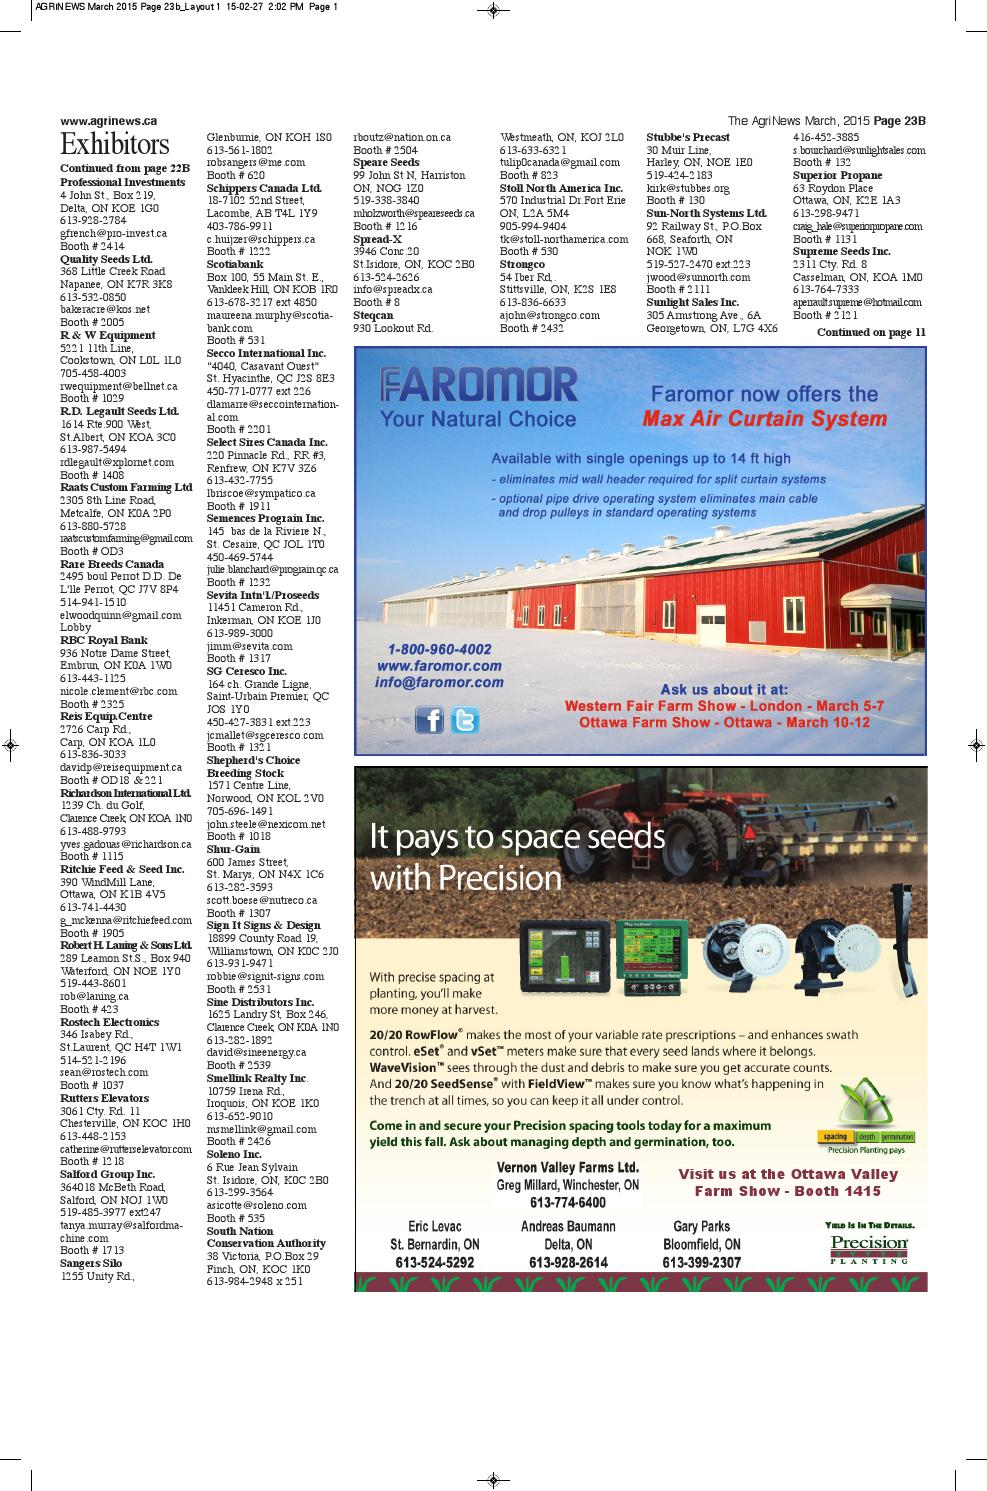 AgriNews March 2015 by Robin Morris - issuu